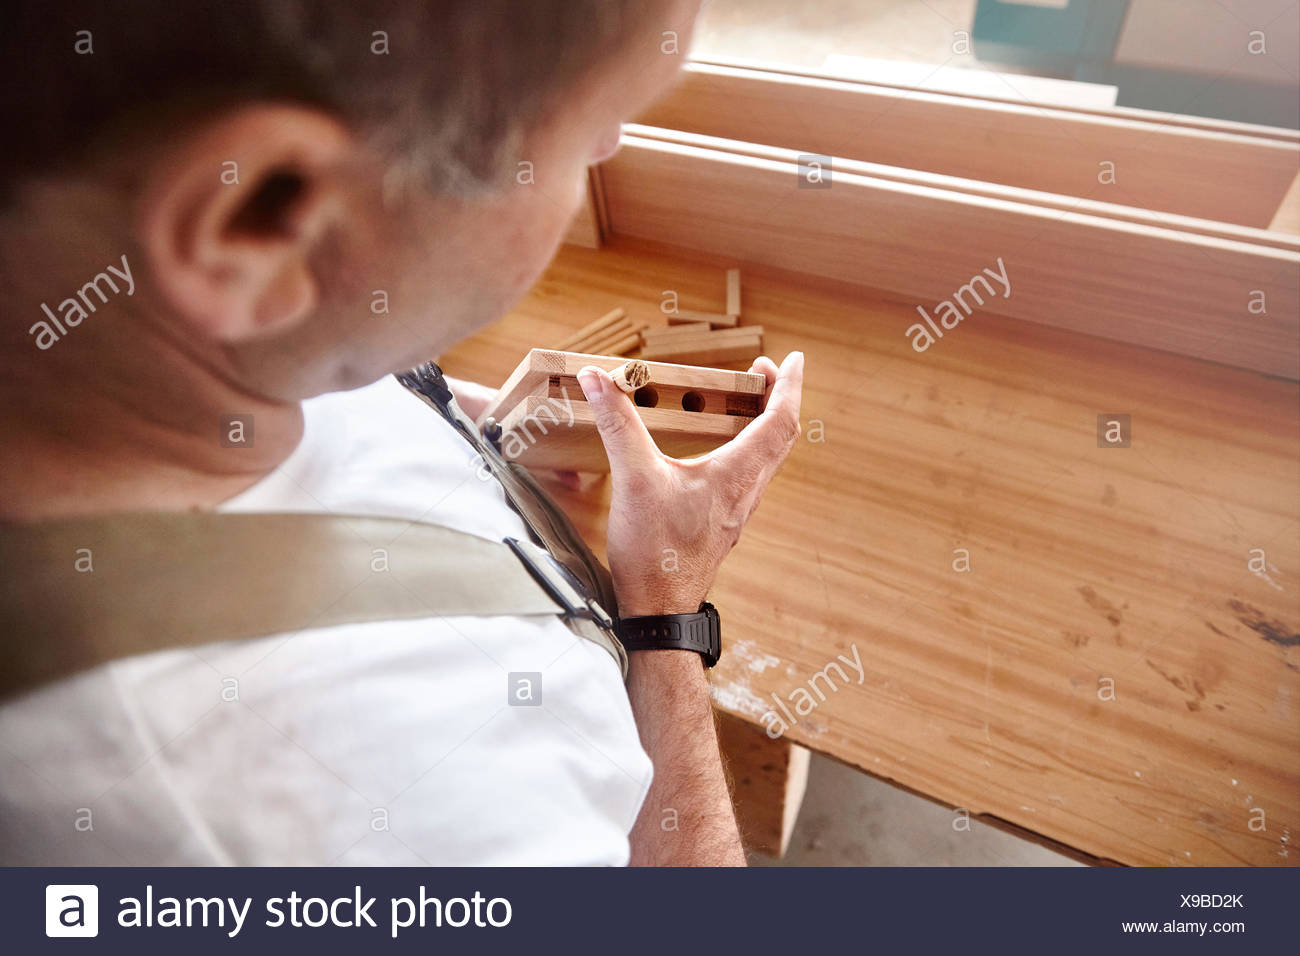 Over shoulder view of carpenter inserting wooden dowel at workbench - Stock Image